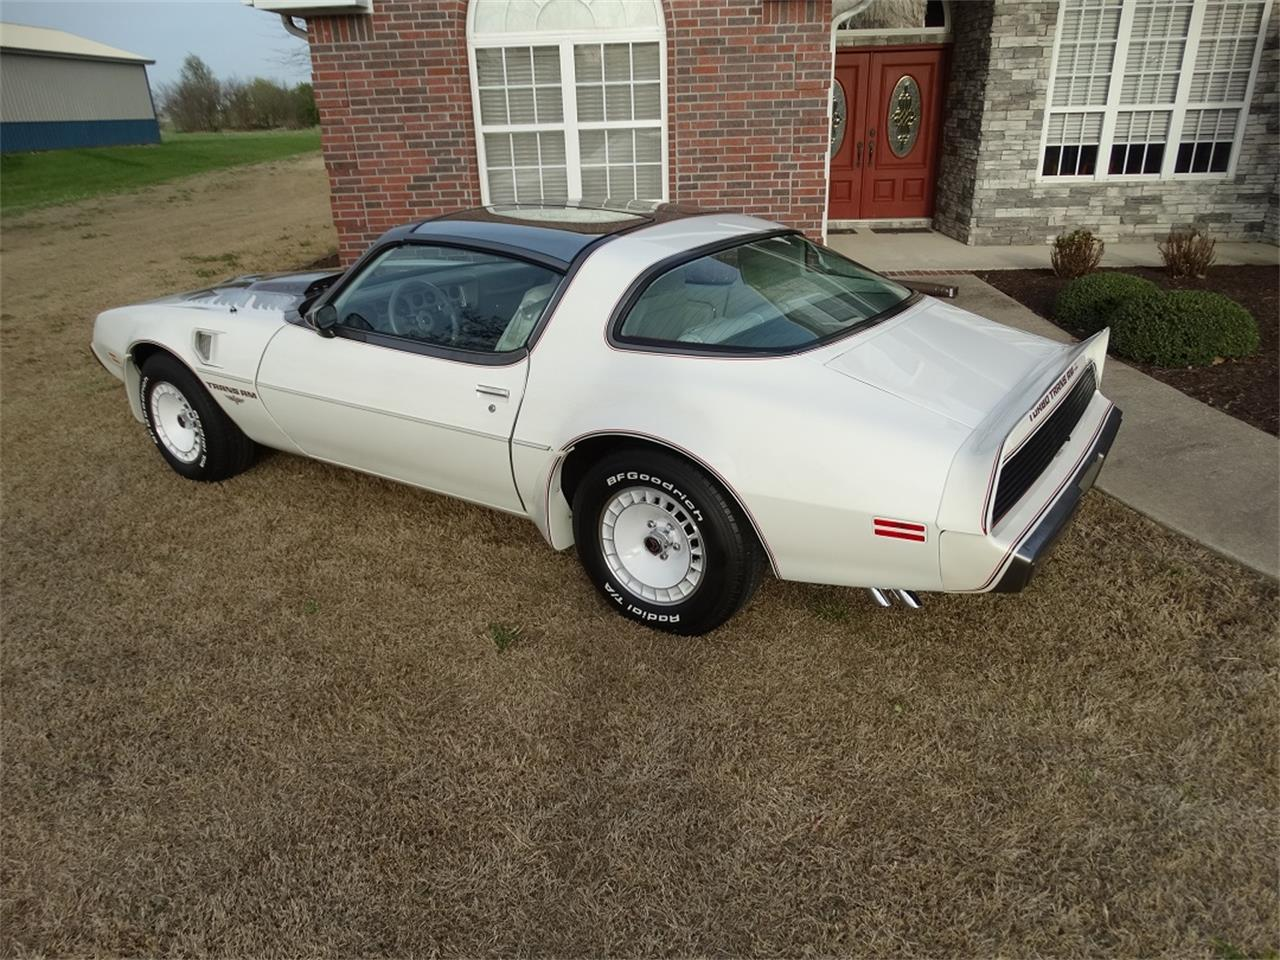 Large Picture of '80 Pontiac Firebird Trans Am located in Arkansas - $32,900.00 - N8ME